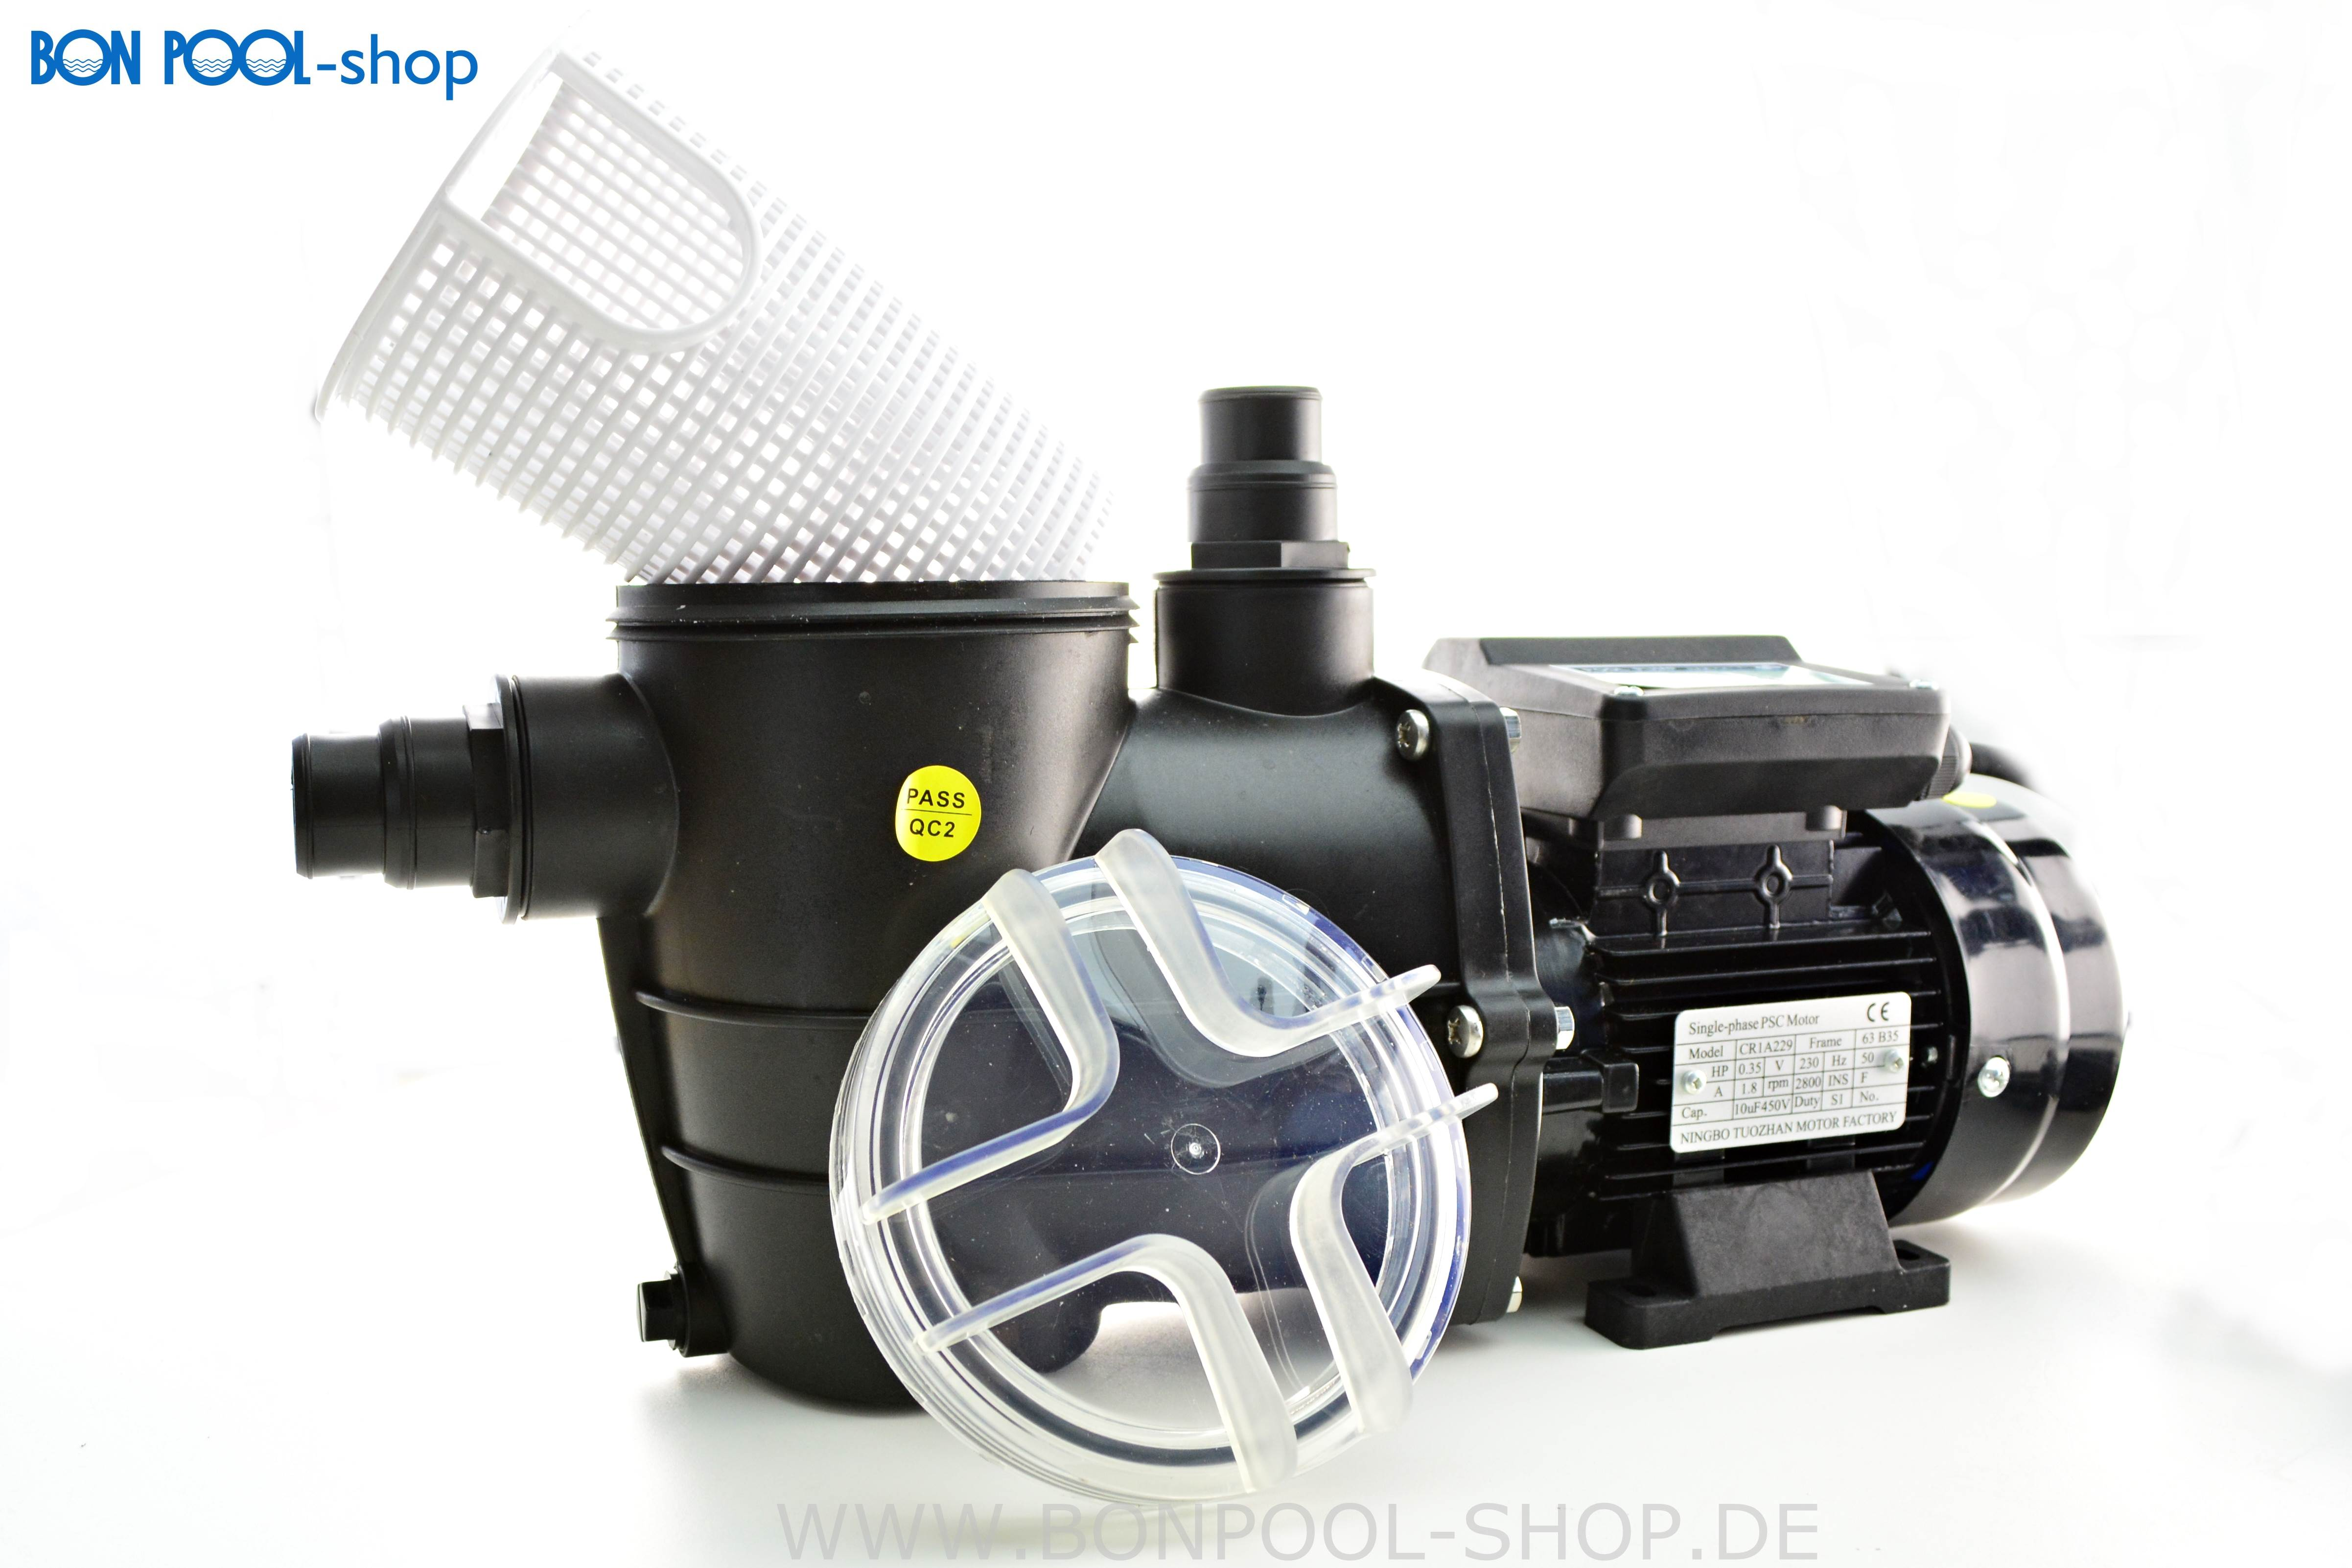 Sandfilteranlage Quick Up Pool Filteranlage Mini Mit Vorfilter Bon Pool